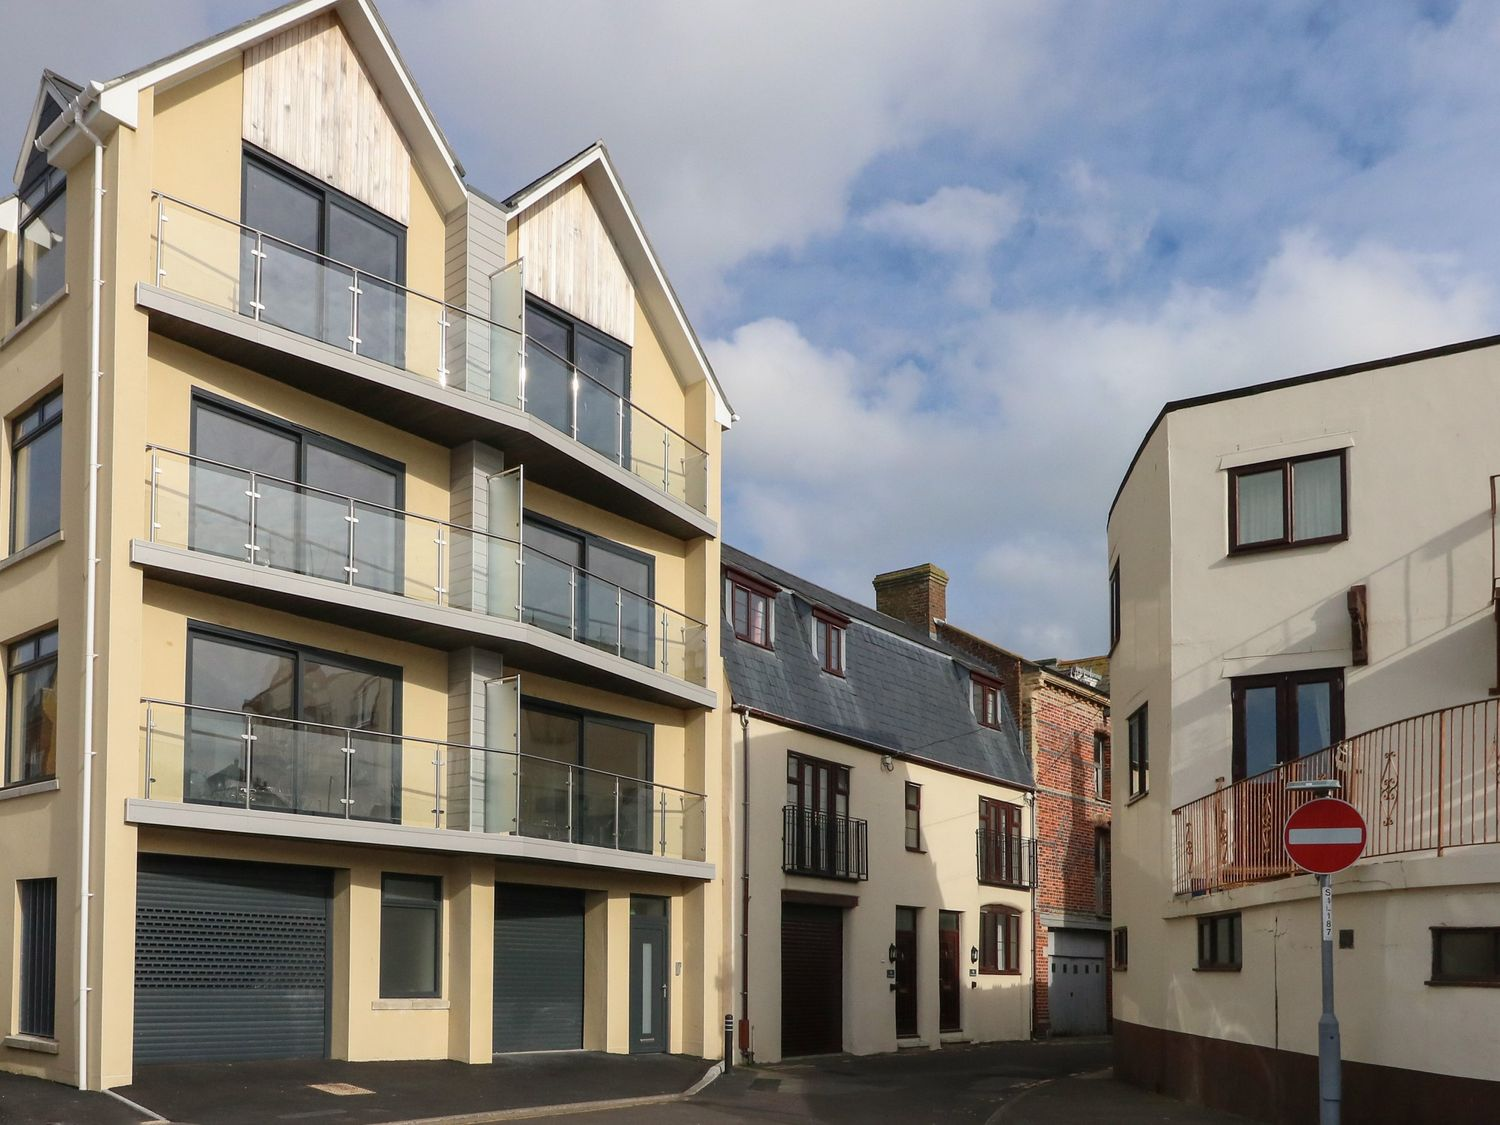 Harbourside Haven Apartment 2 - Dorset - 1059263 - photo 1